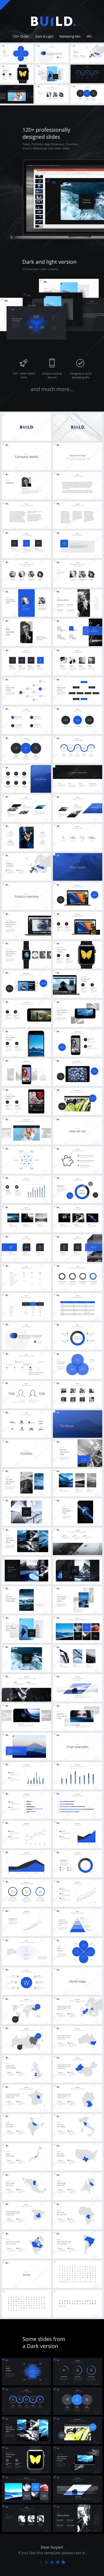 BUILD - PowerPoint Presentation Template